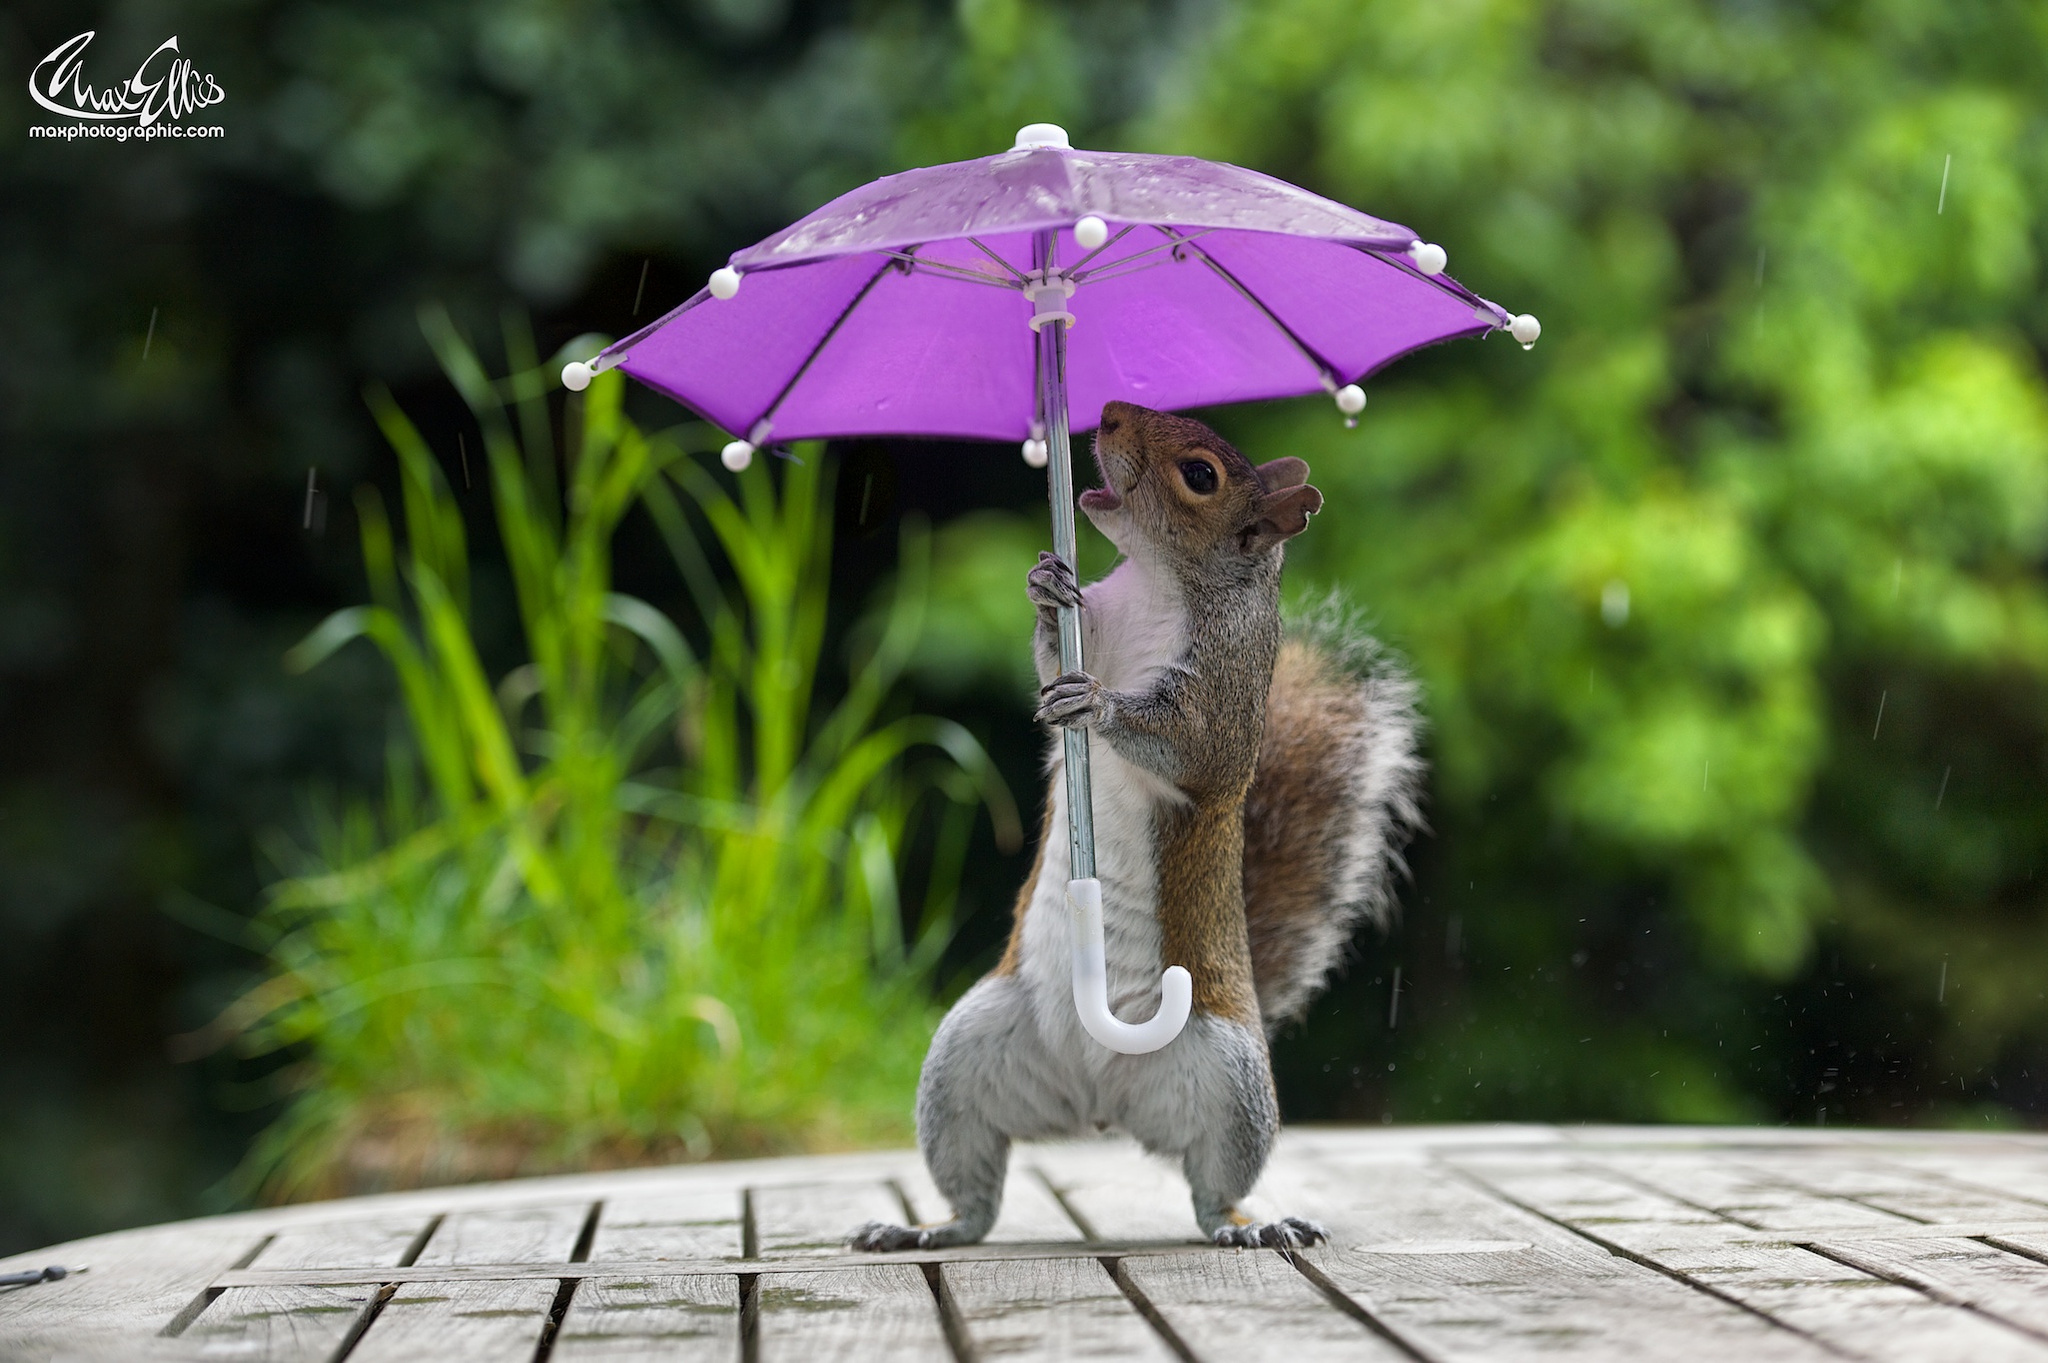 Photographer Gets Squirrel to Pose with a Tiny Umbrella on a Rainy Day